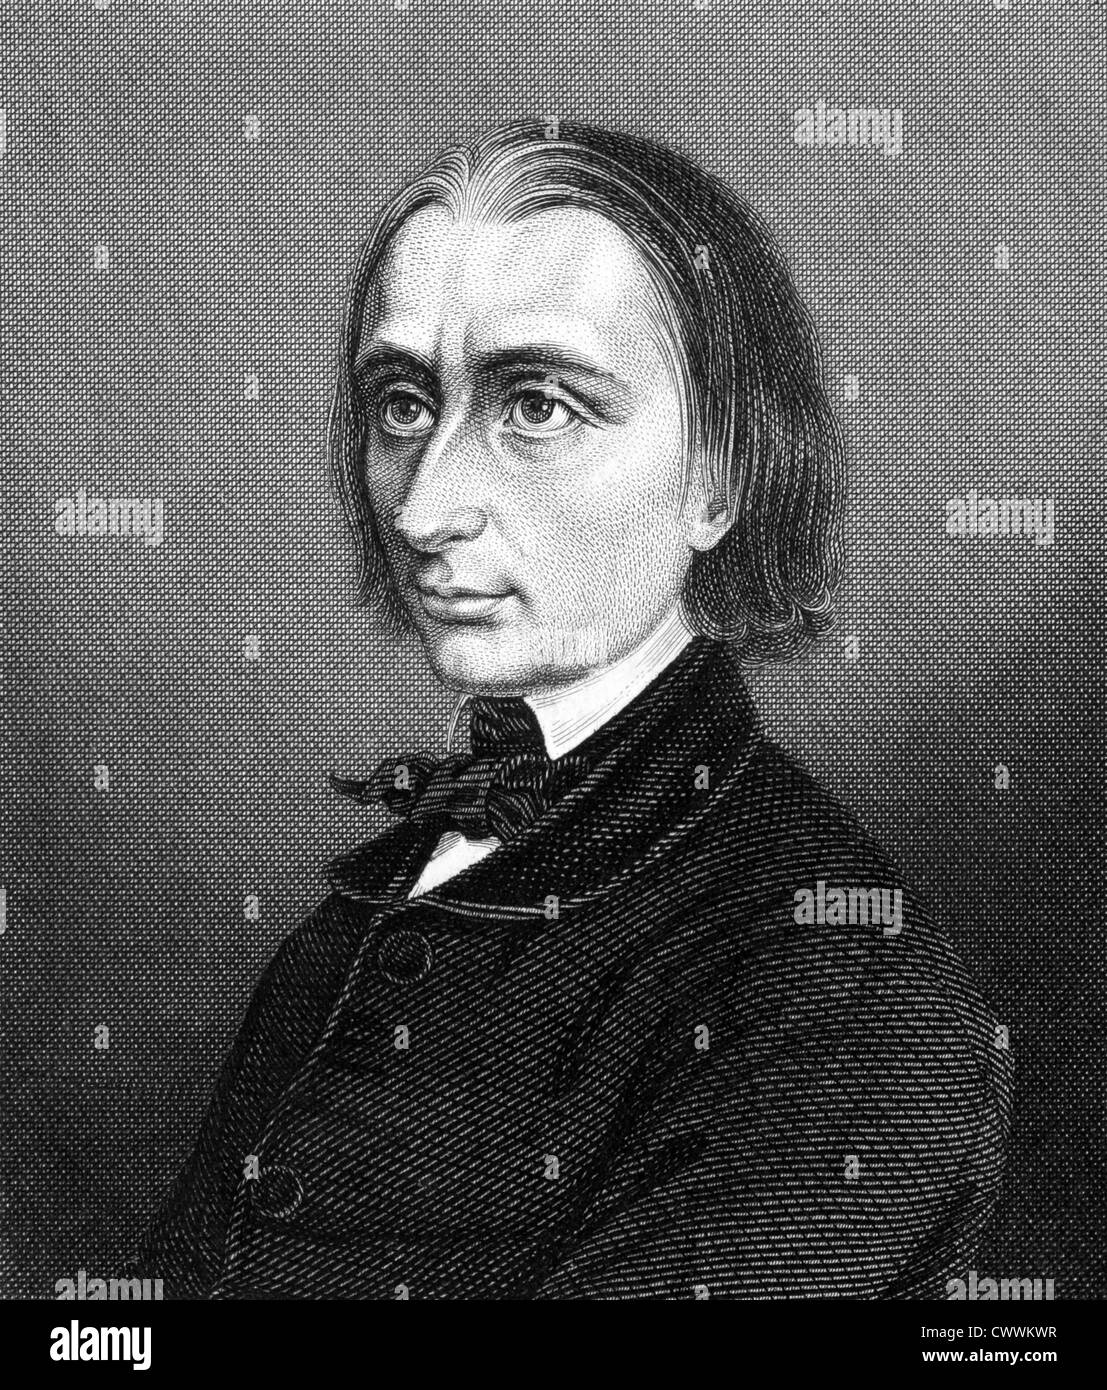 Franz Liszt (1811-1886) on engraving from 1859. Hungarian composer, pianist, conductor and teacher. Stock Photo